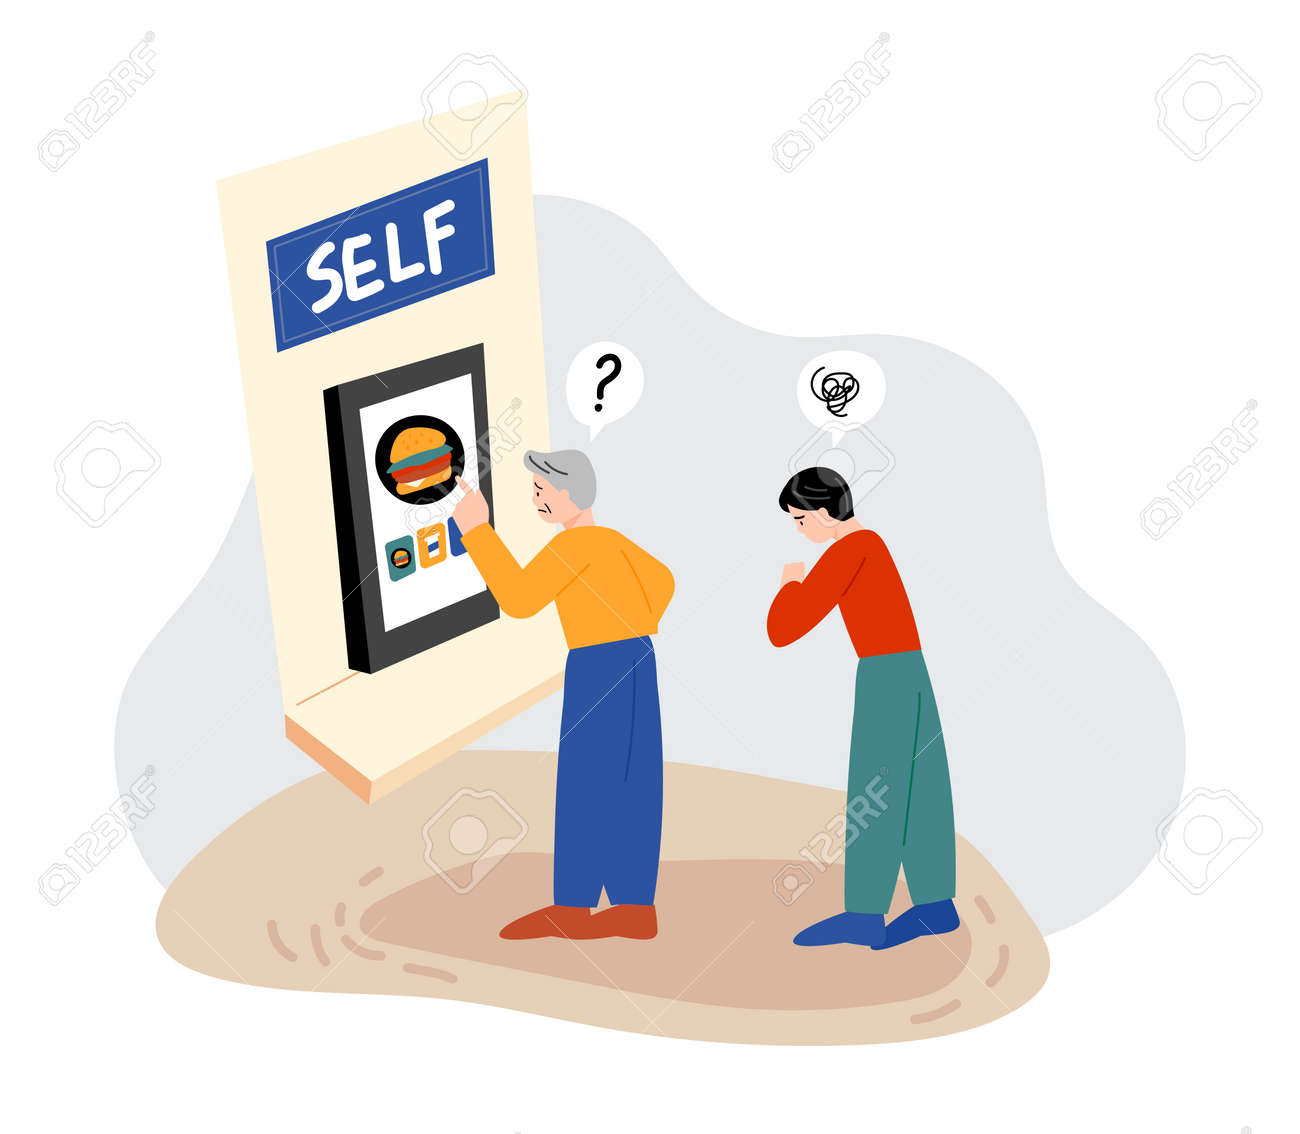 An old man does not know how to use a kiosk. - 172561344